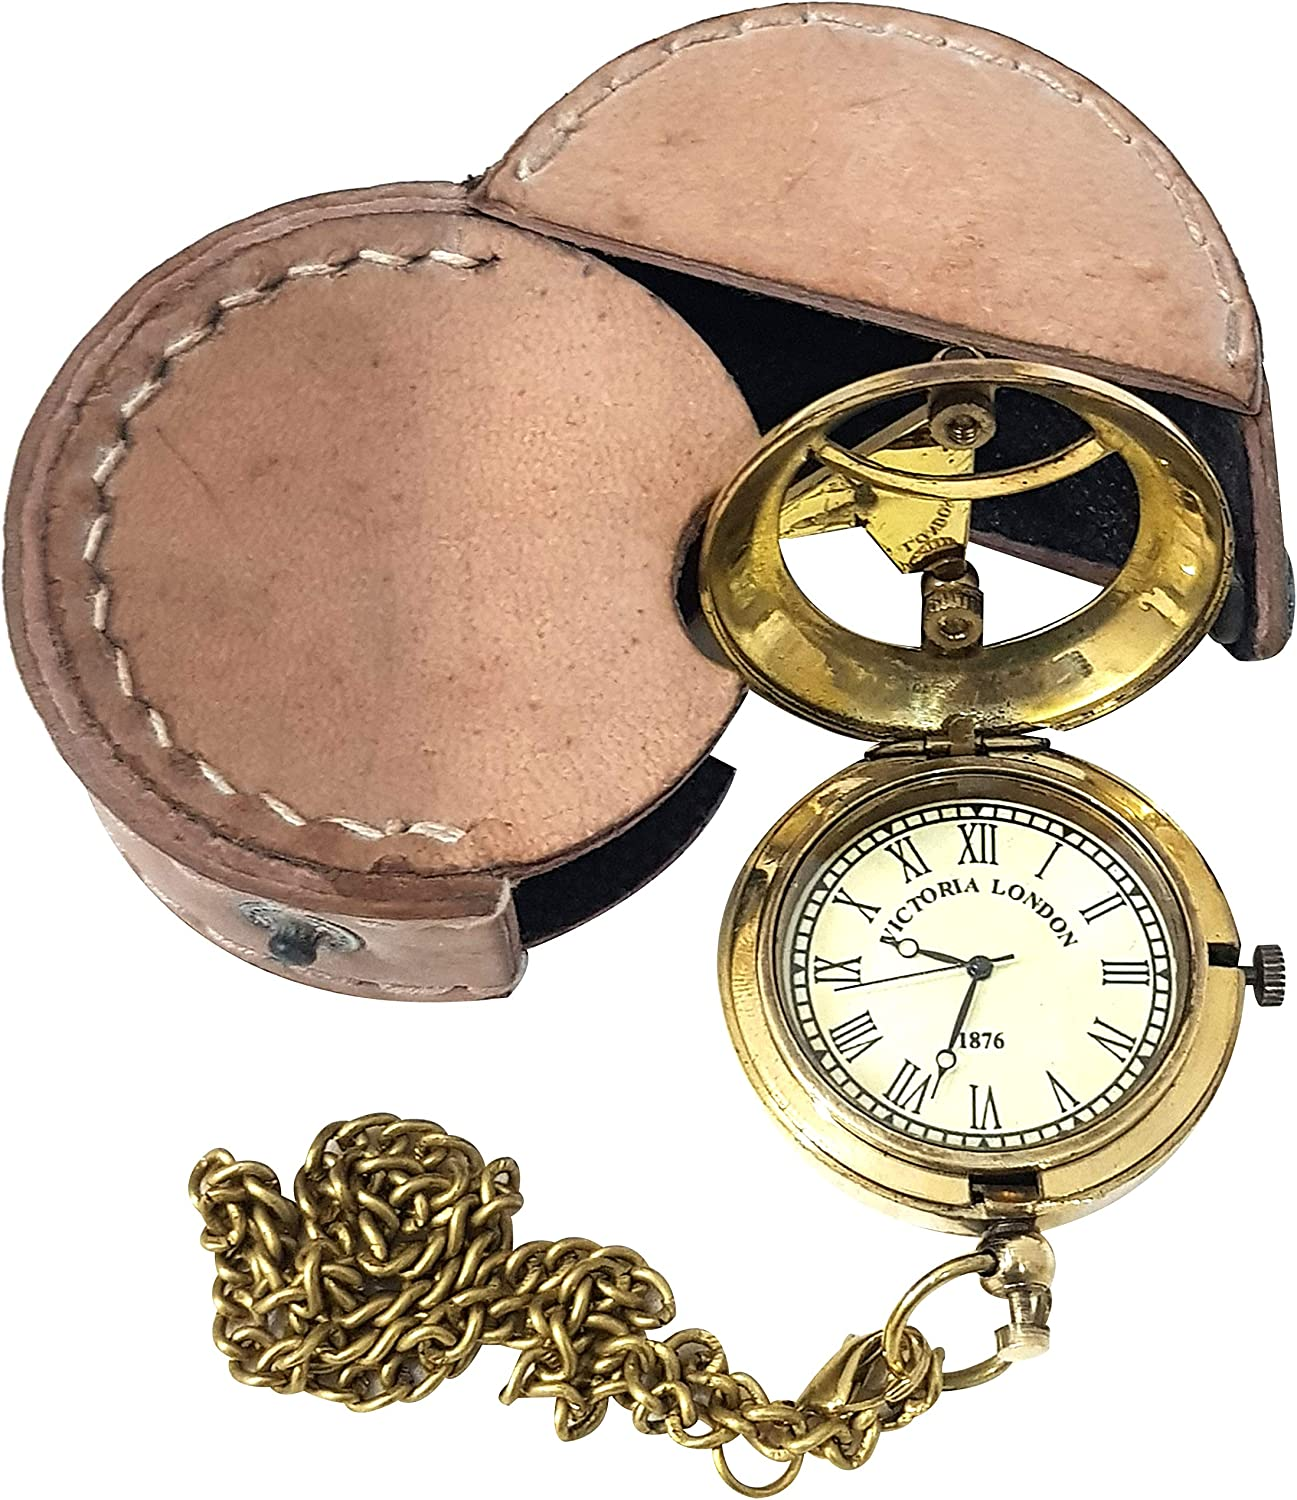 Vintage Brass Sundial Nautical Compass with Leather Case Steampunk Collectible